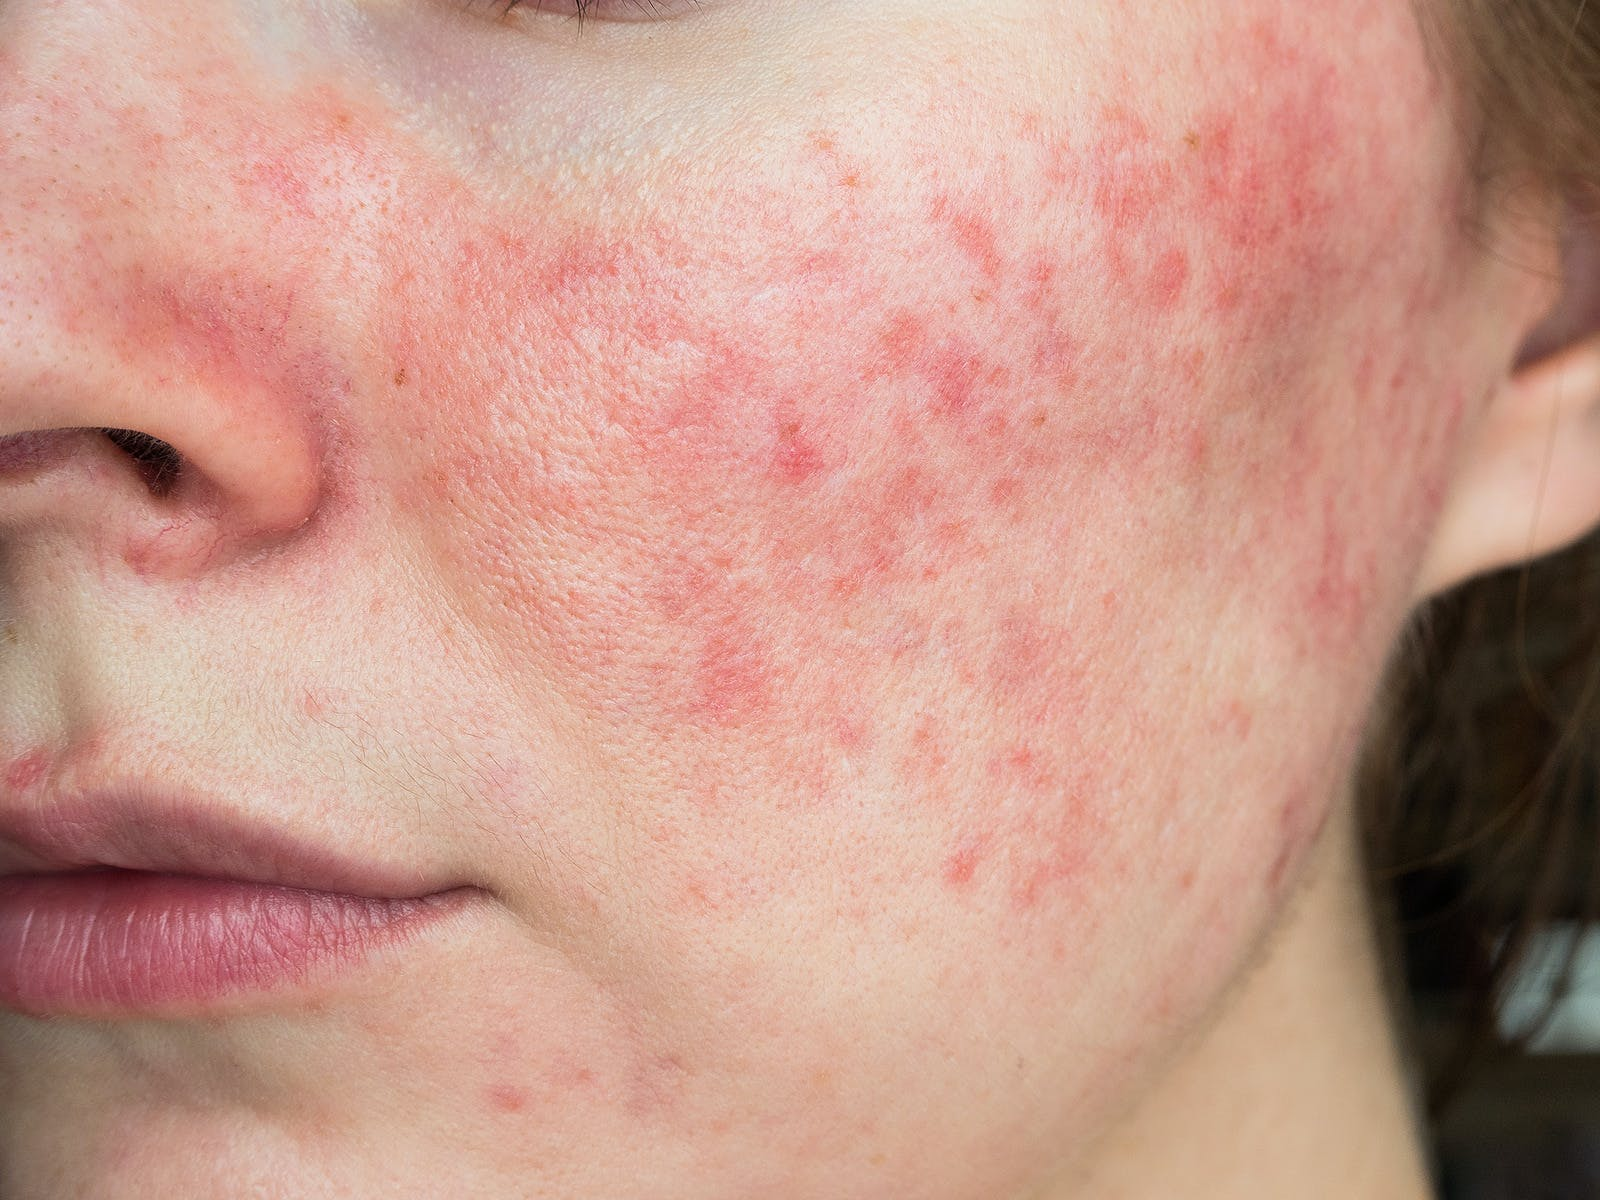 rosacea skin problem on woman's cheek